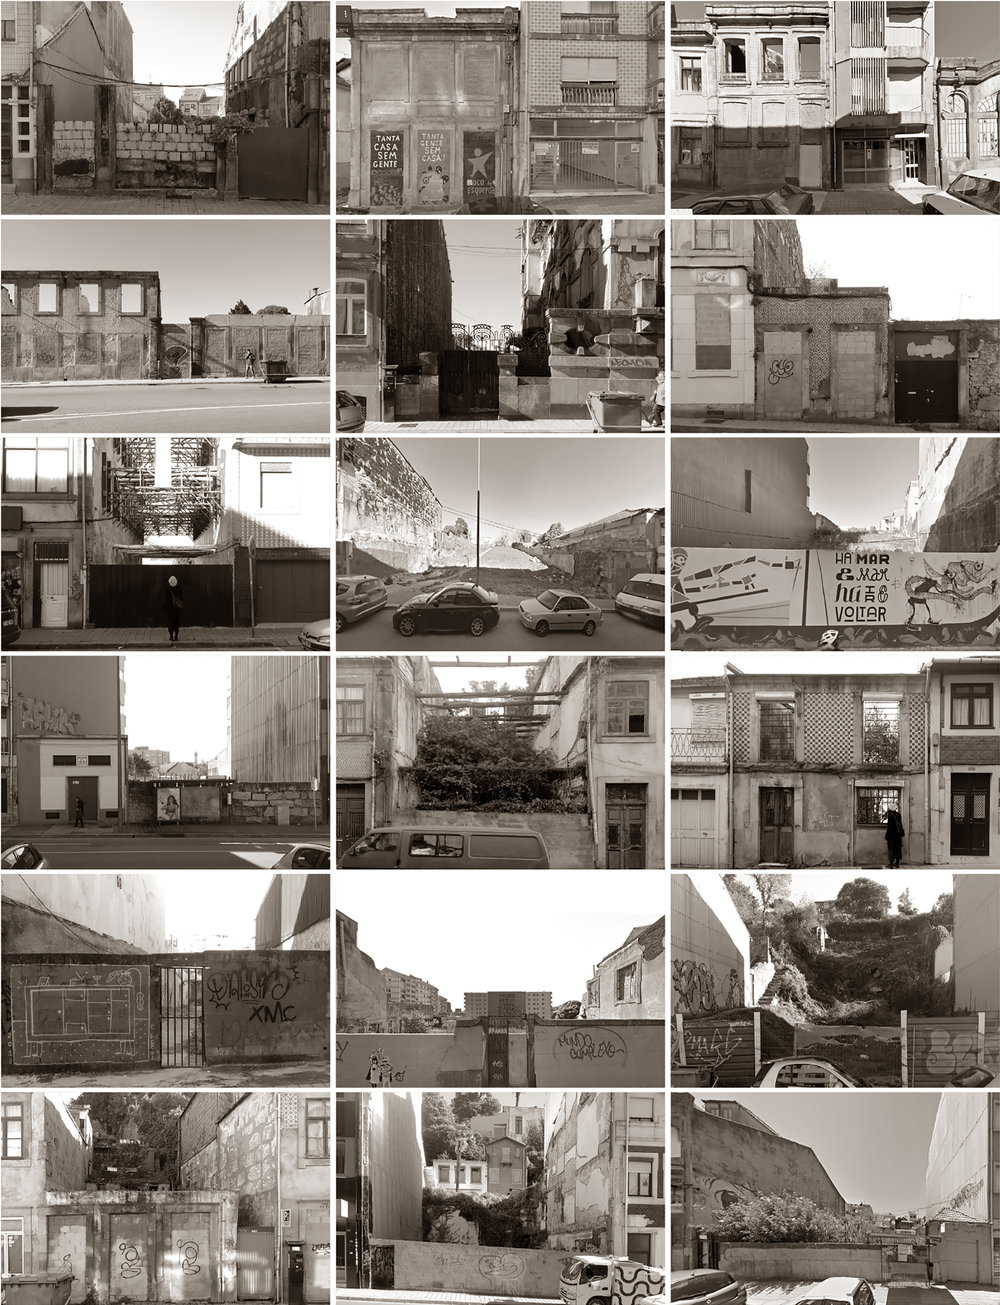 vacant plots in one single neighbourhood  Porto, 2016